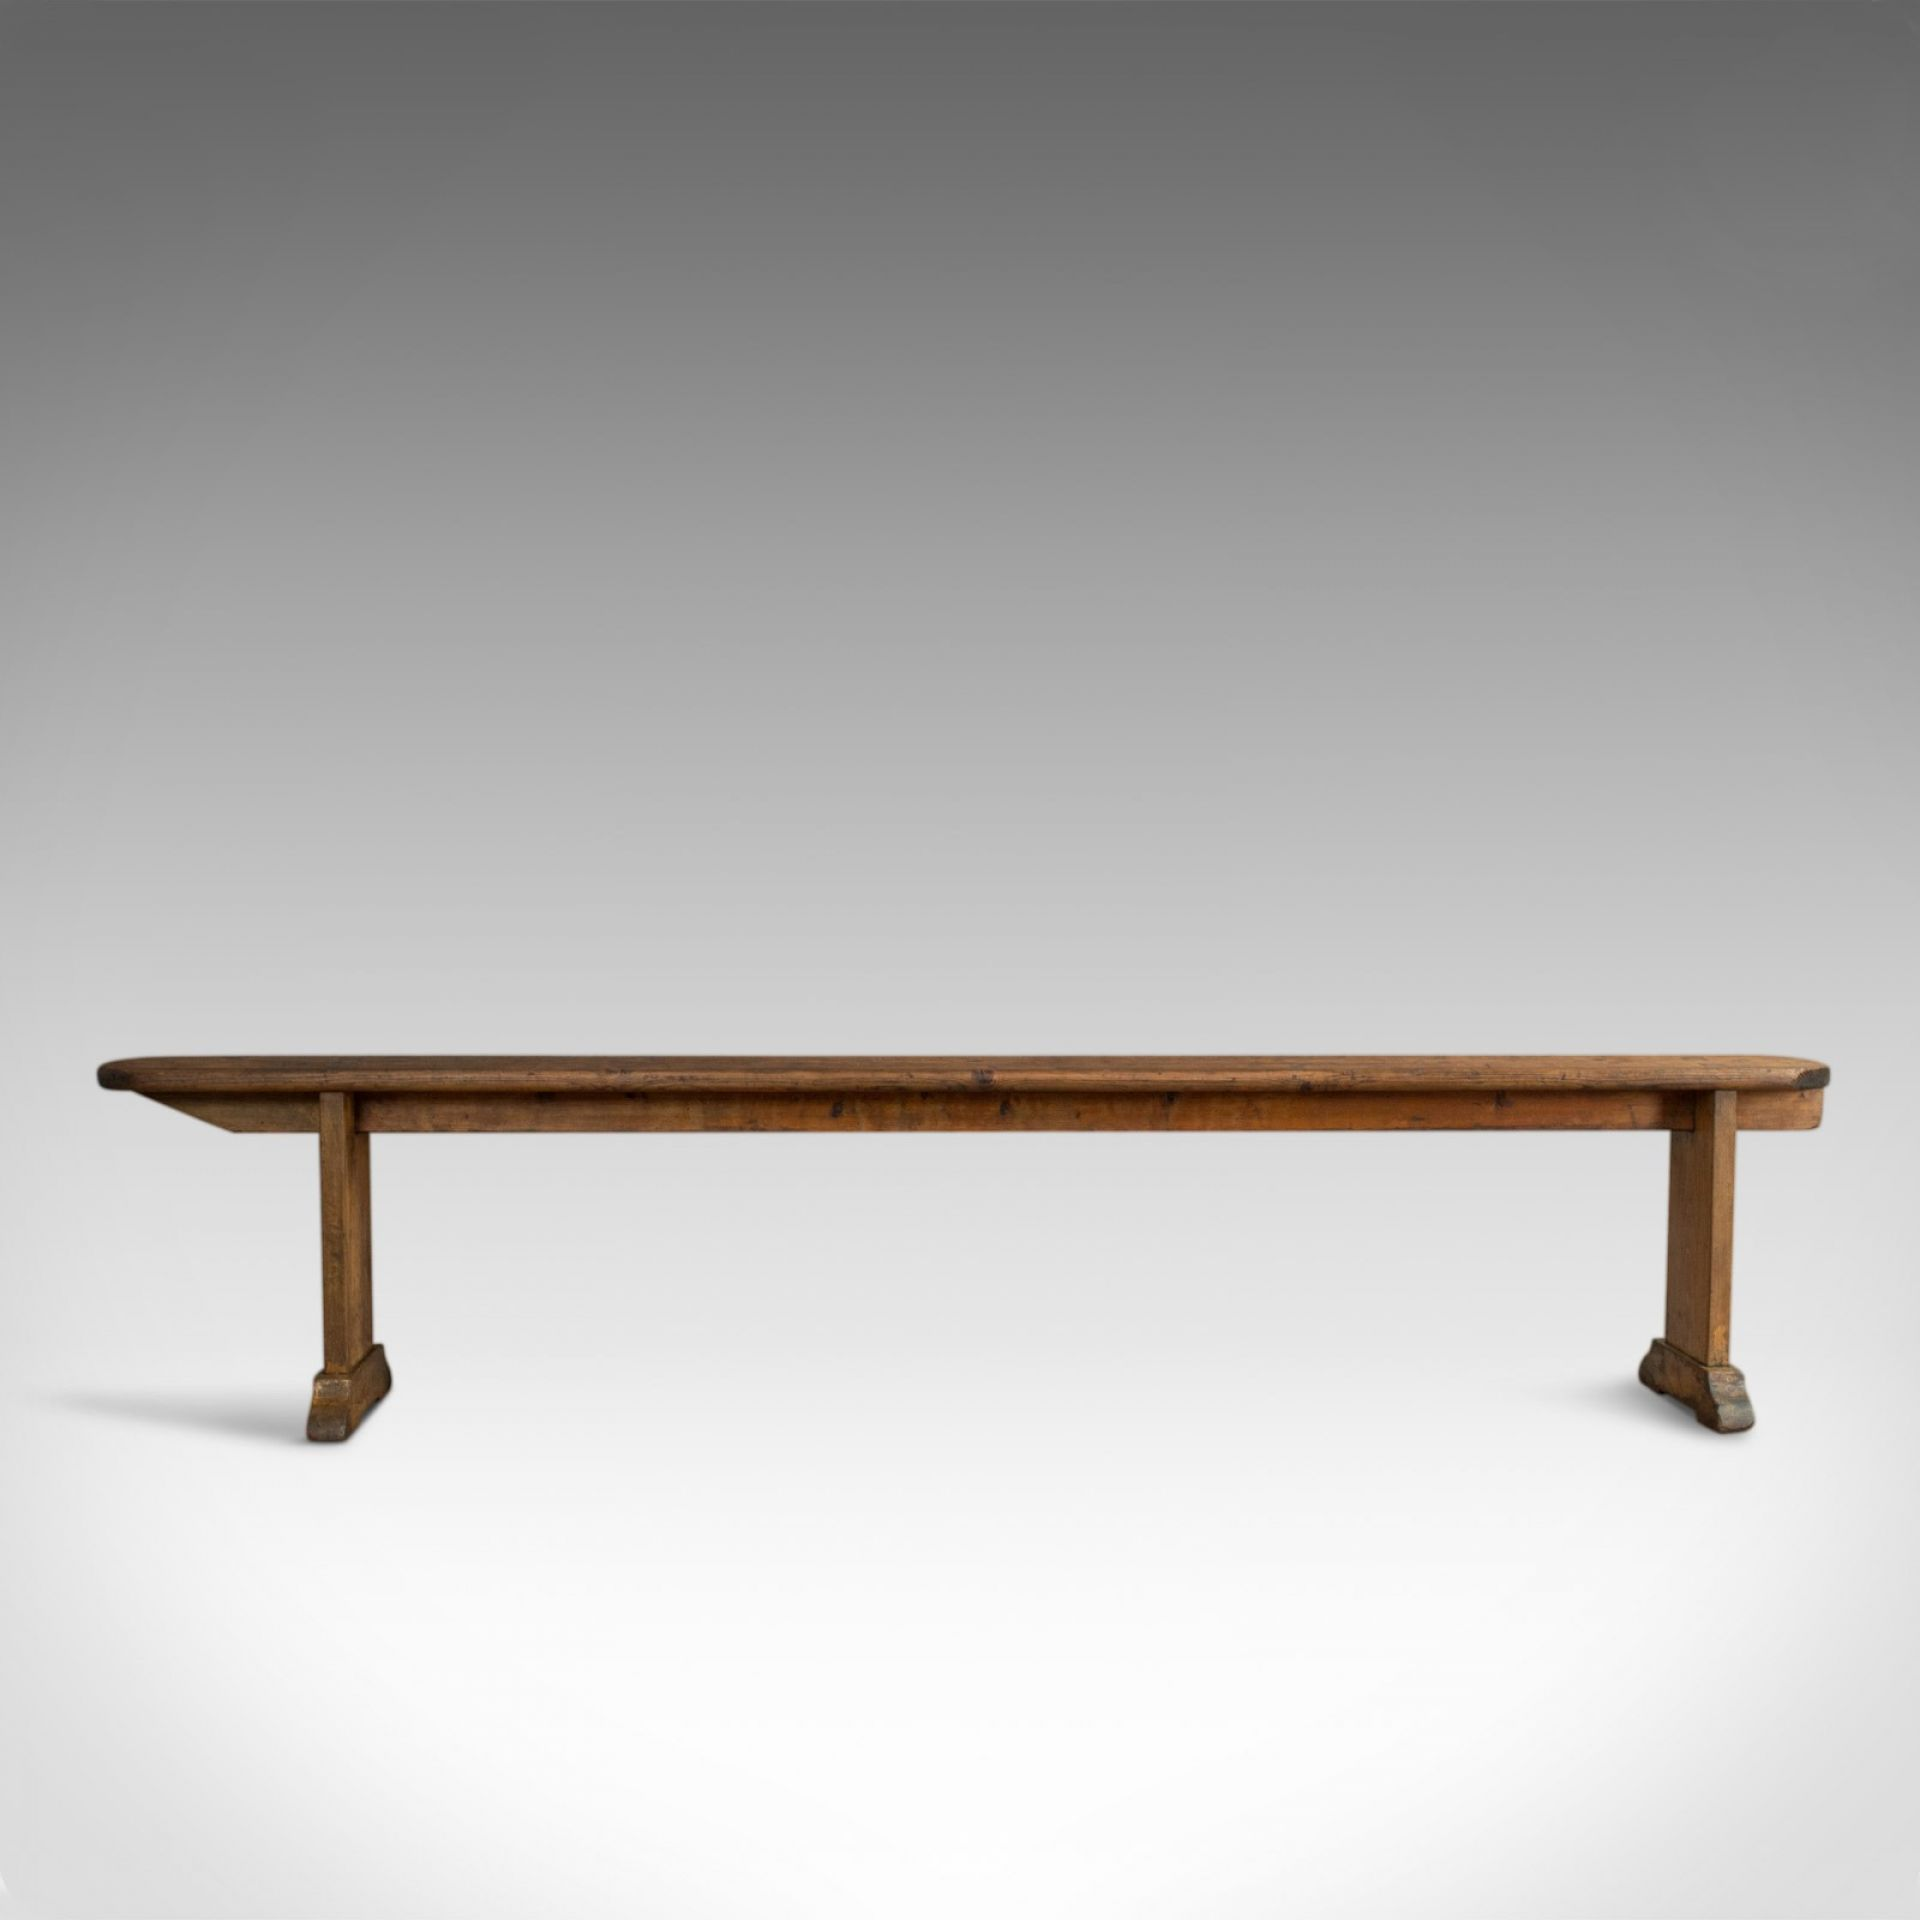 Long Antique Bench, 7 Foot 4 Inch, Victorian, Kitchen, Pew, Seat, Circa 1900